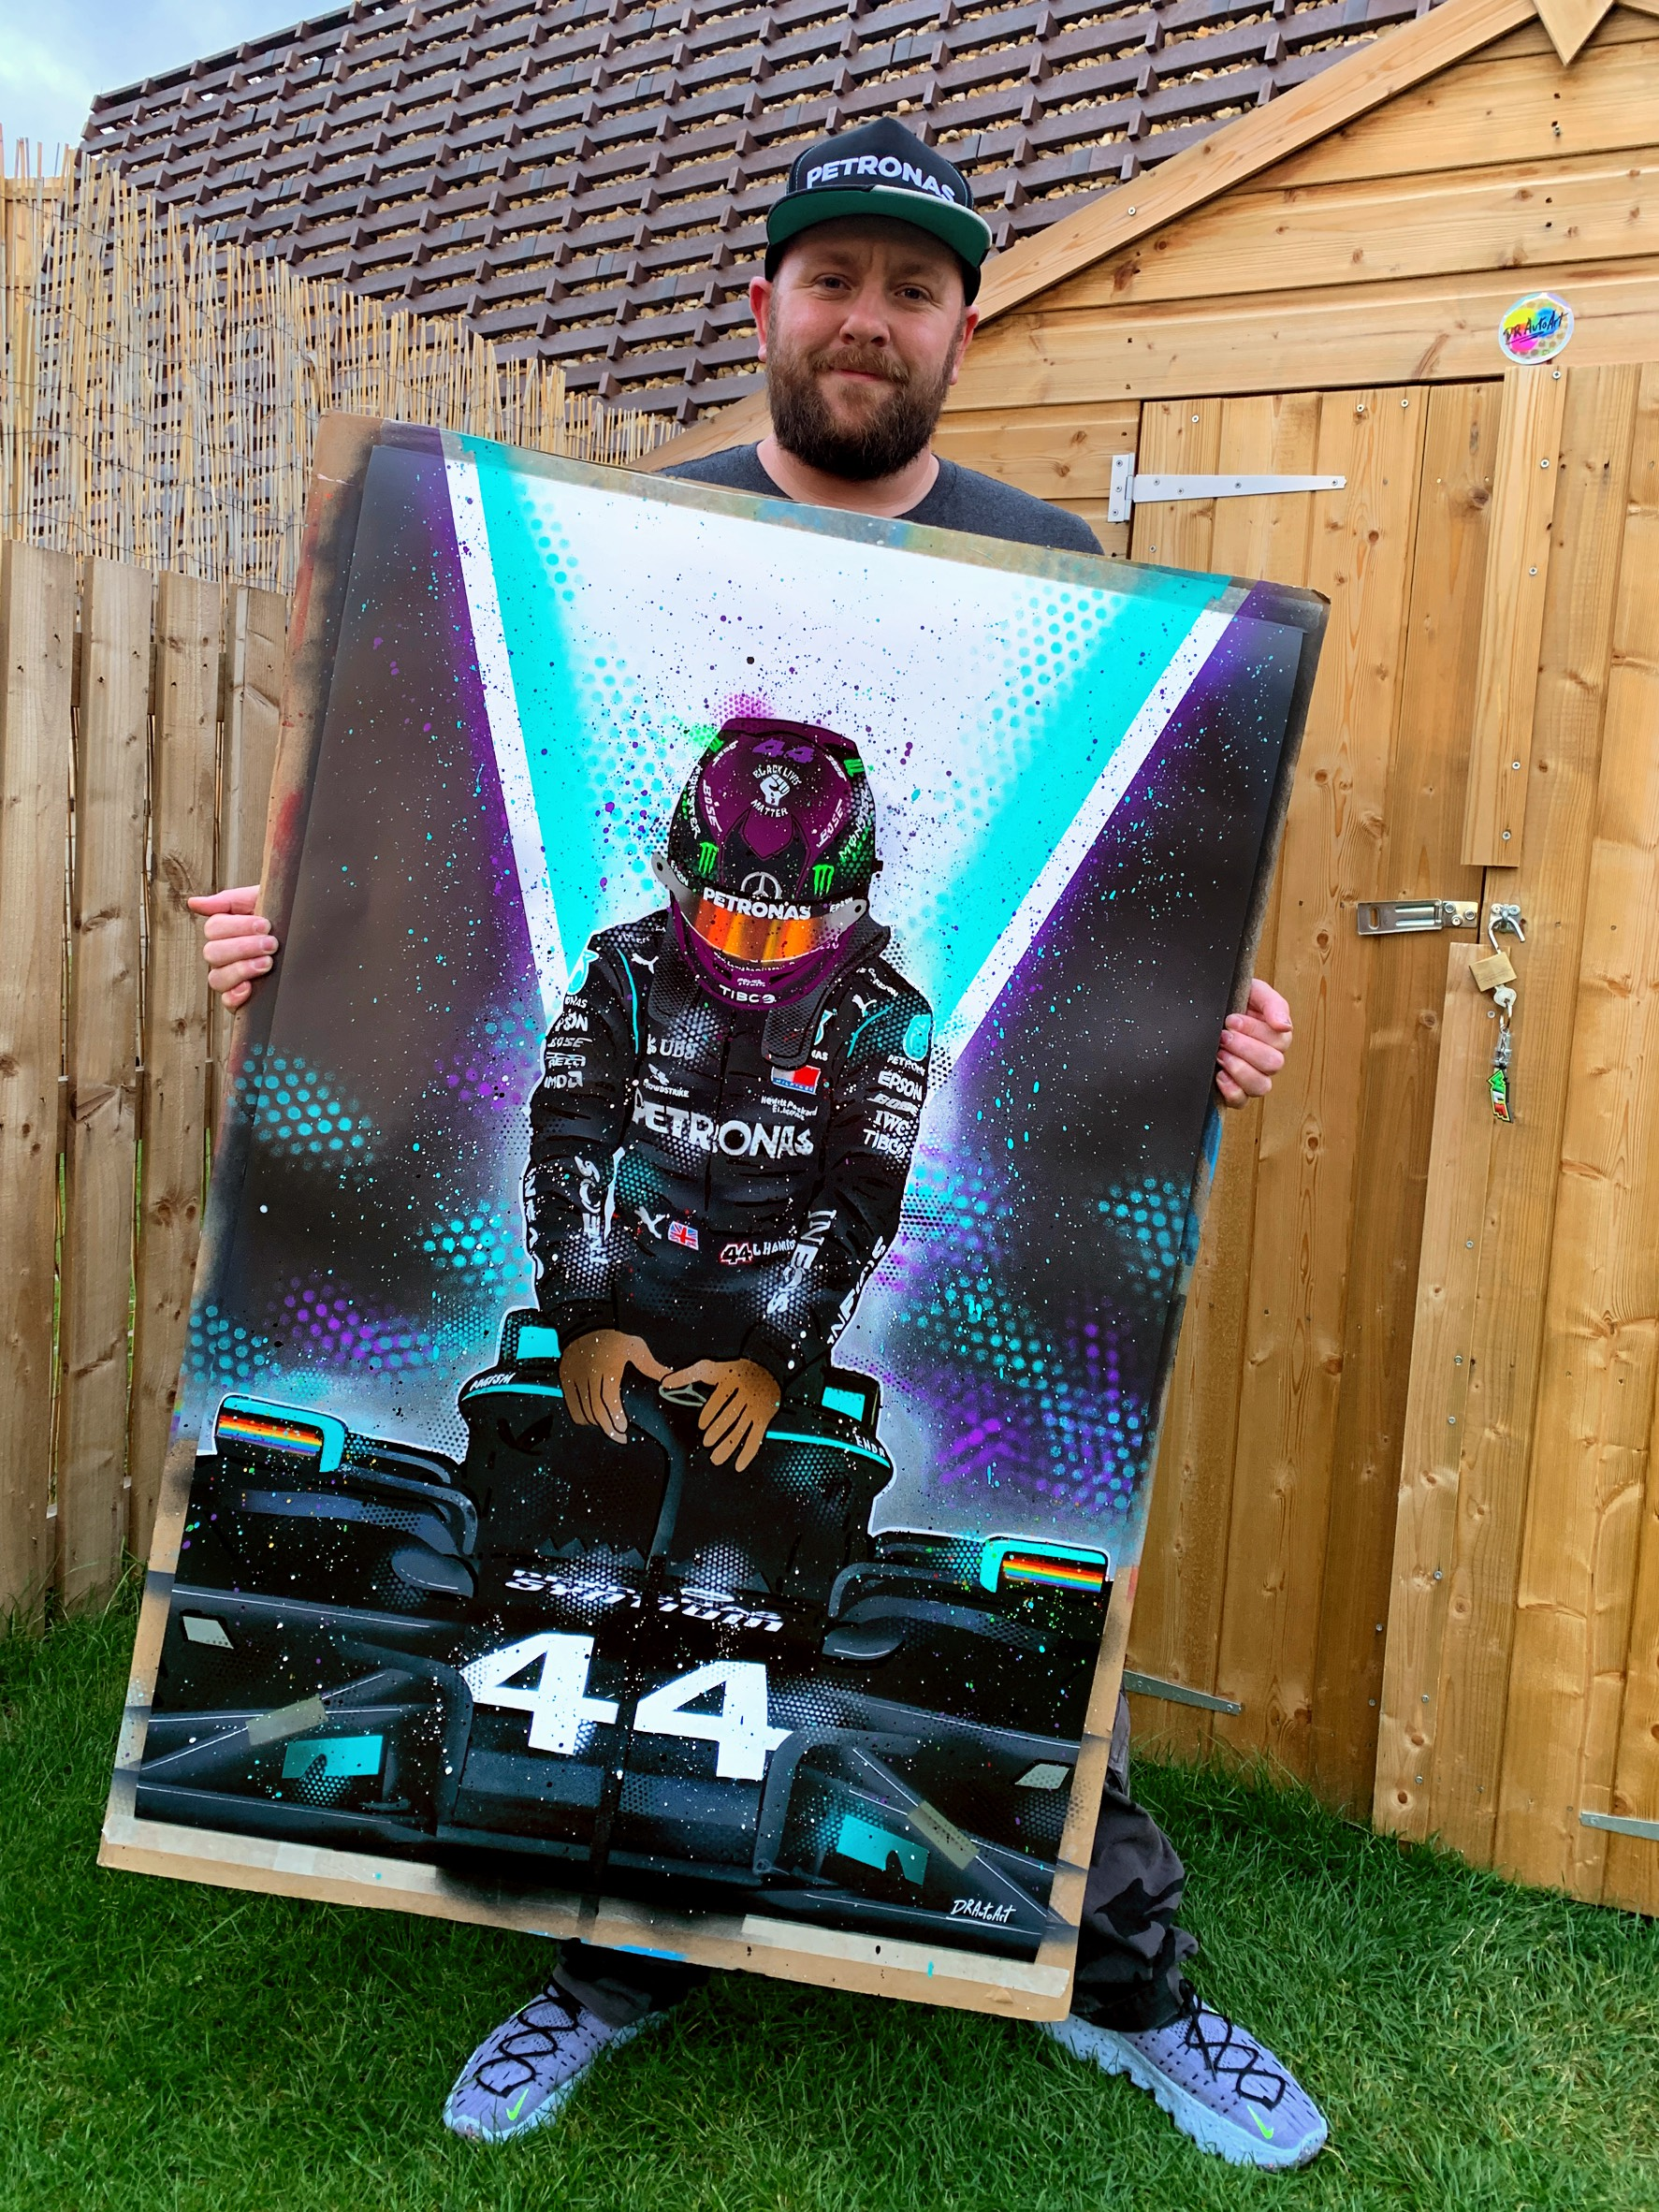 STILL WE RISE - Lewis Hamilton graffiti painting